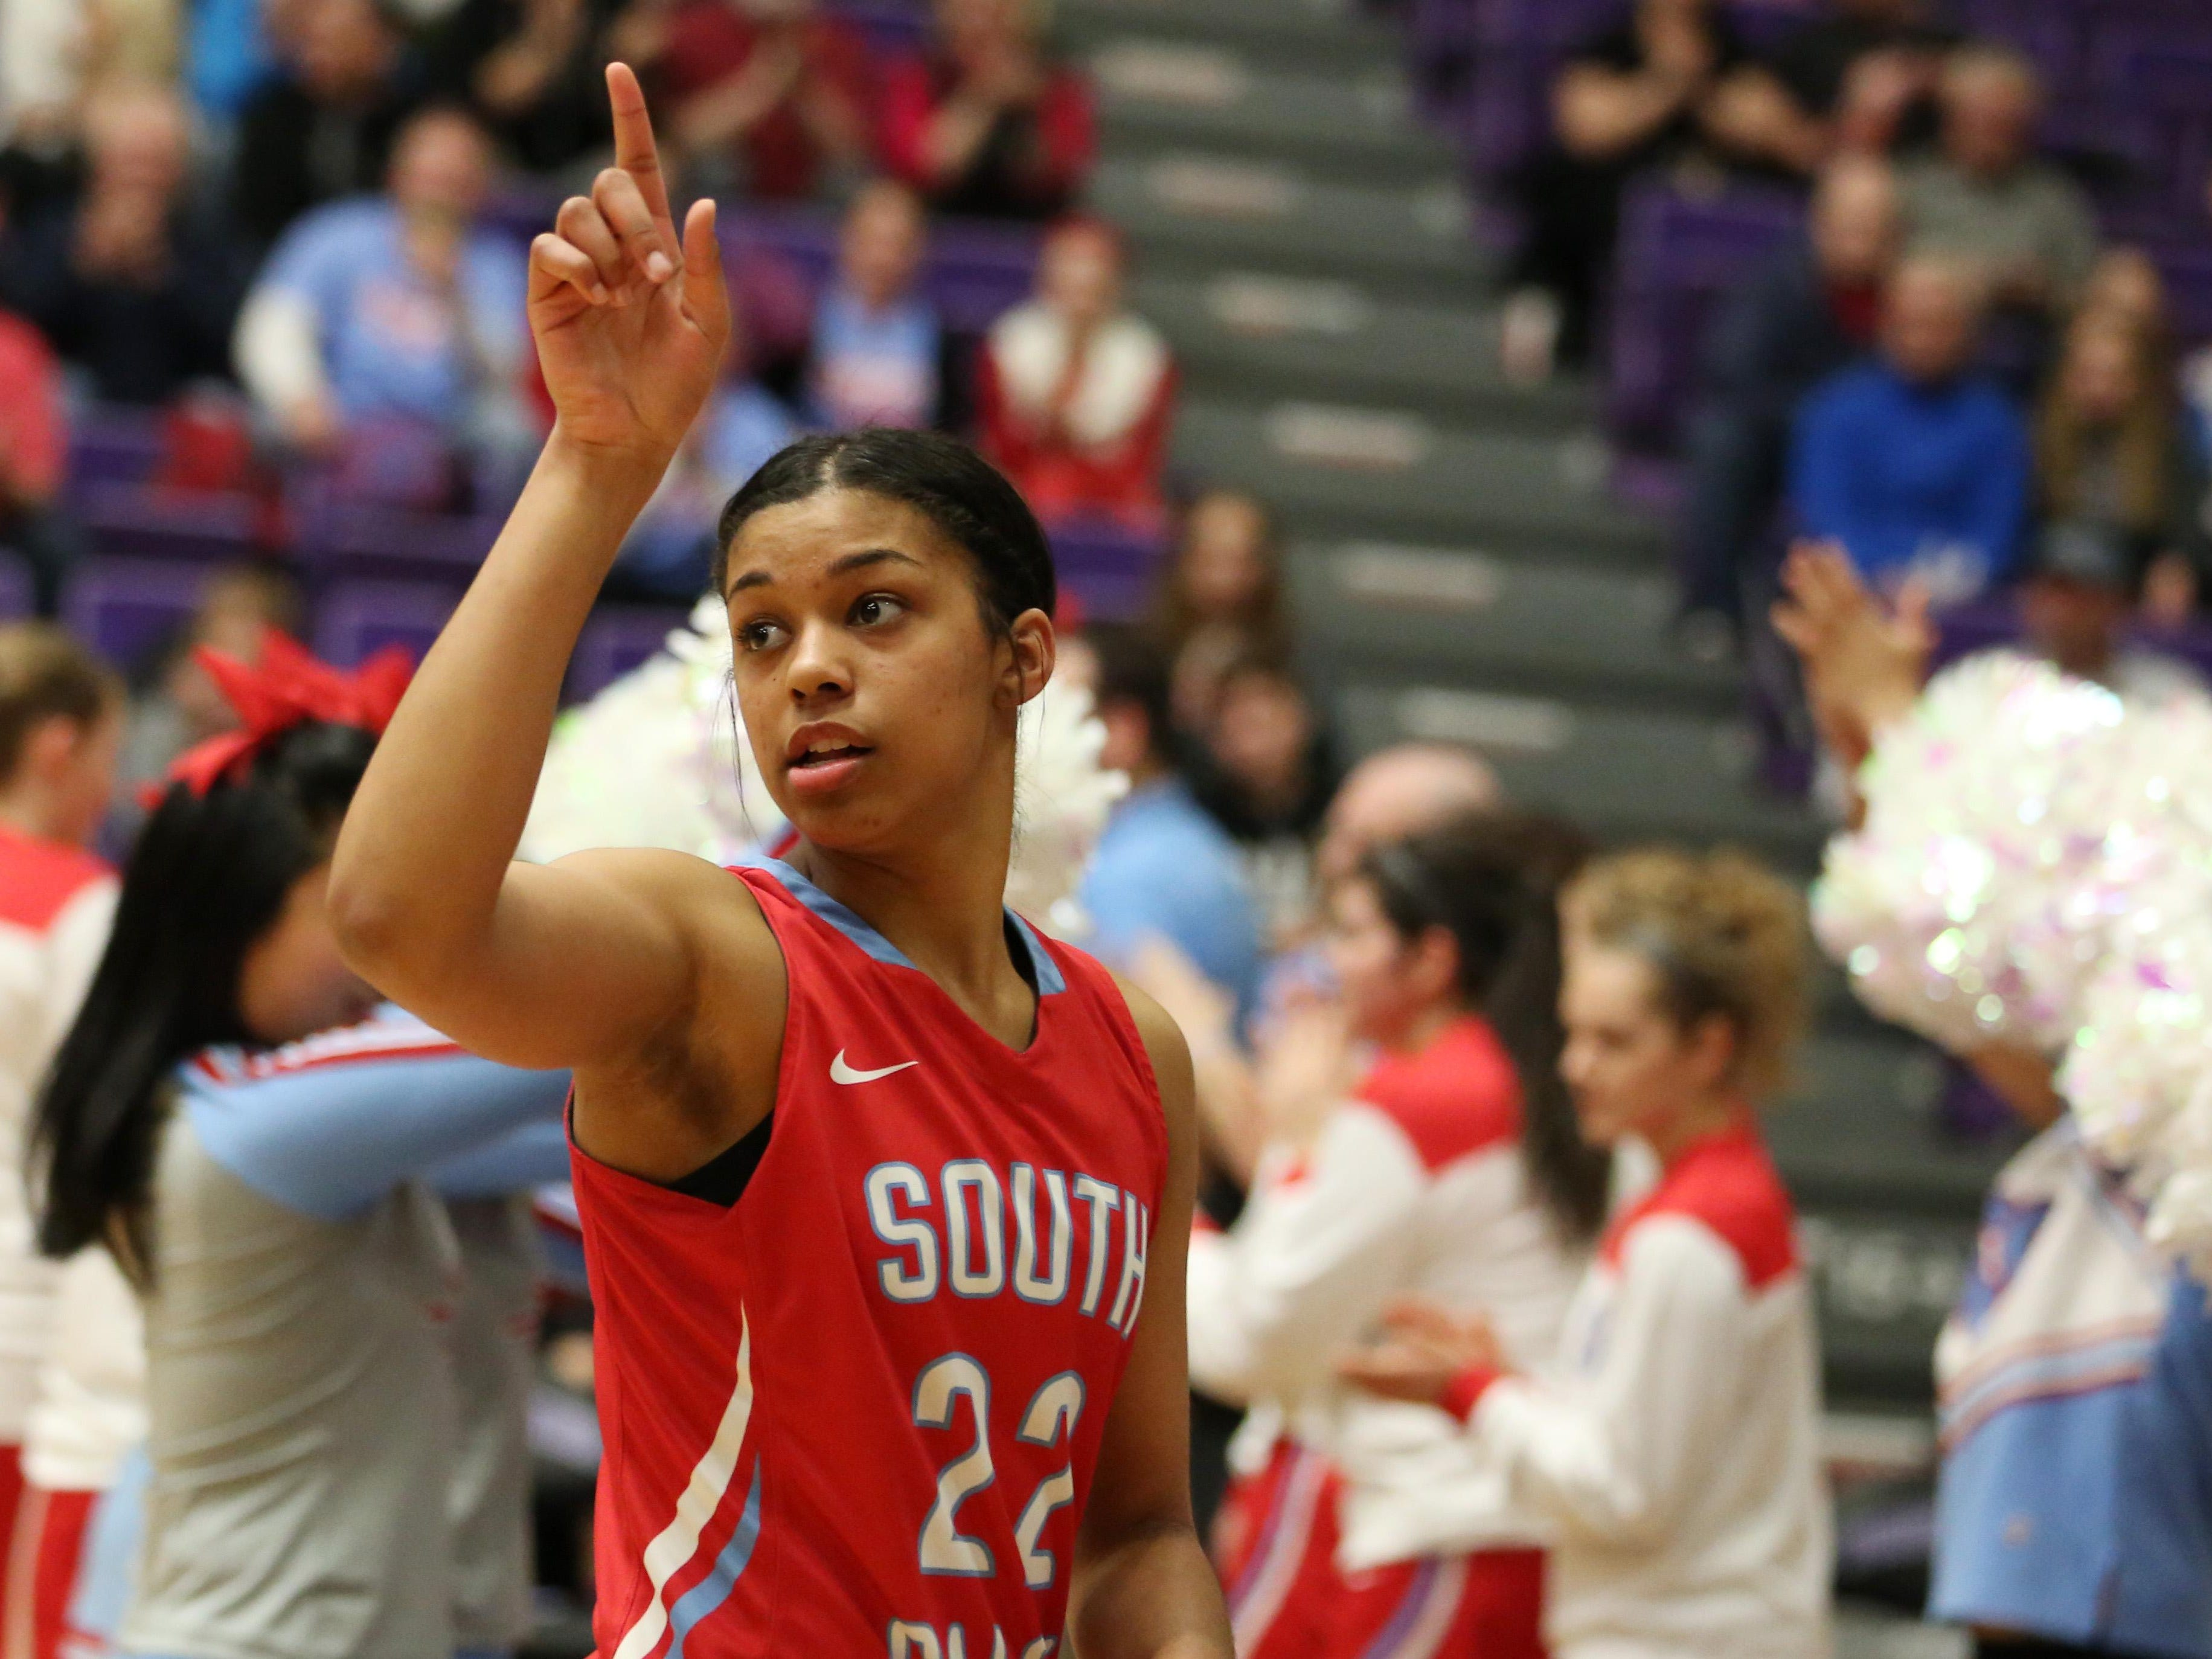 South Salem's Evina Westbrook and the Saxons defeat Tigard 49-42 in the OSAA Class 6A State Championship on Saturday, March 12, 2016, at the Chiles Center at University of Portland.